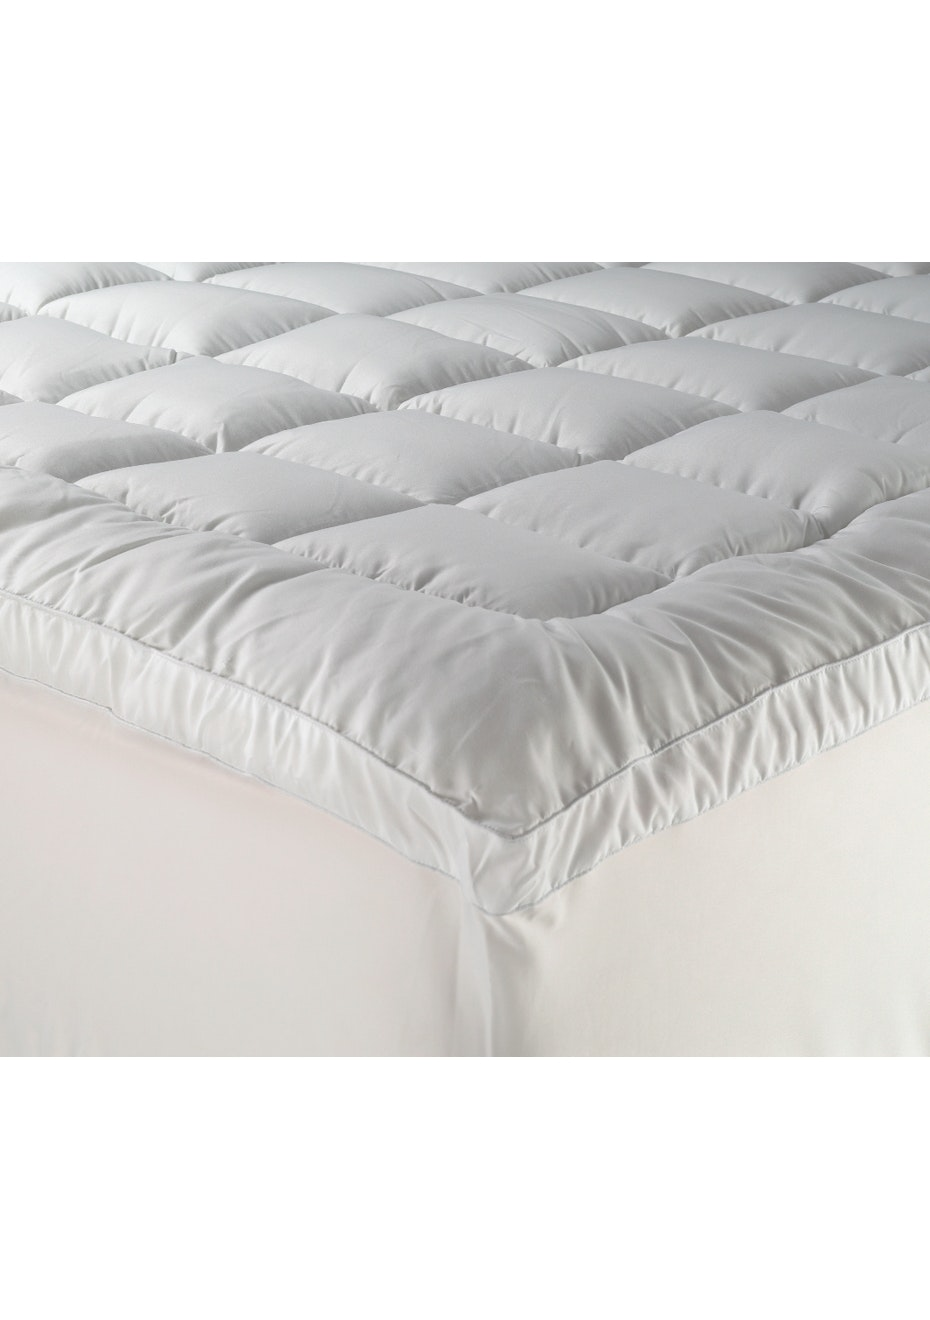 Super Loft Mattress Protector - 800GSM - Double Bed